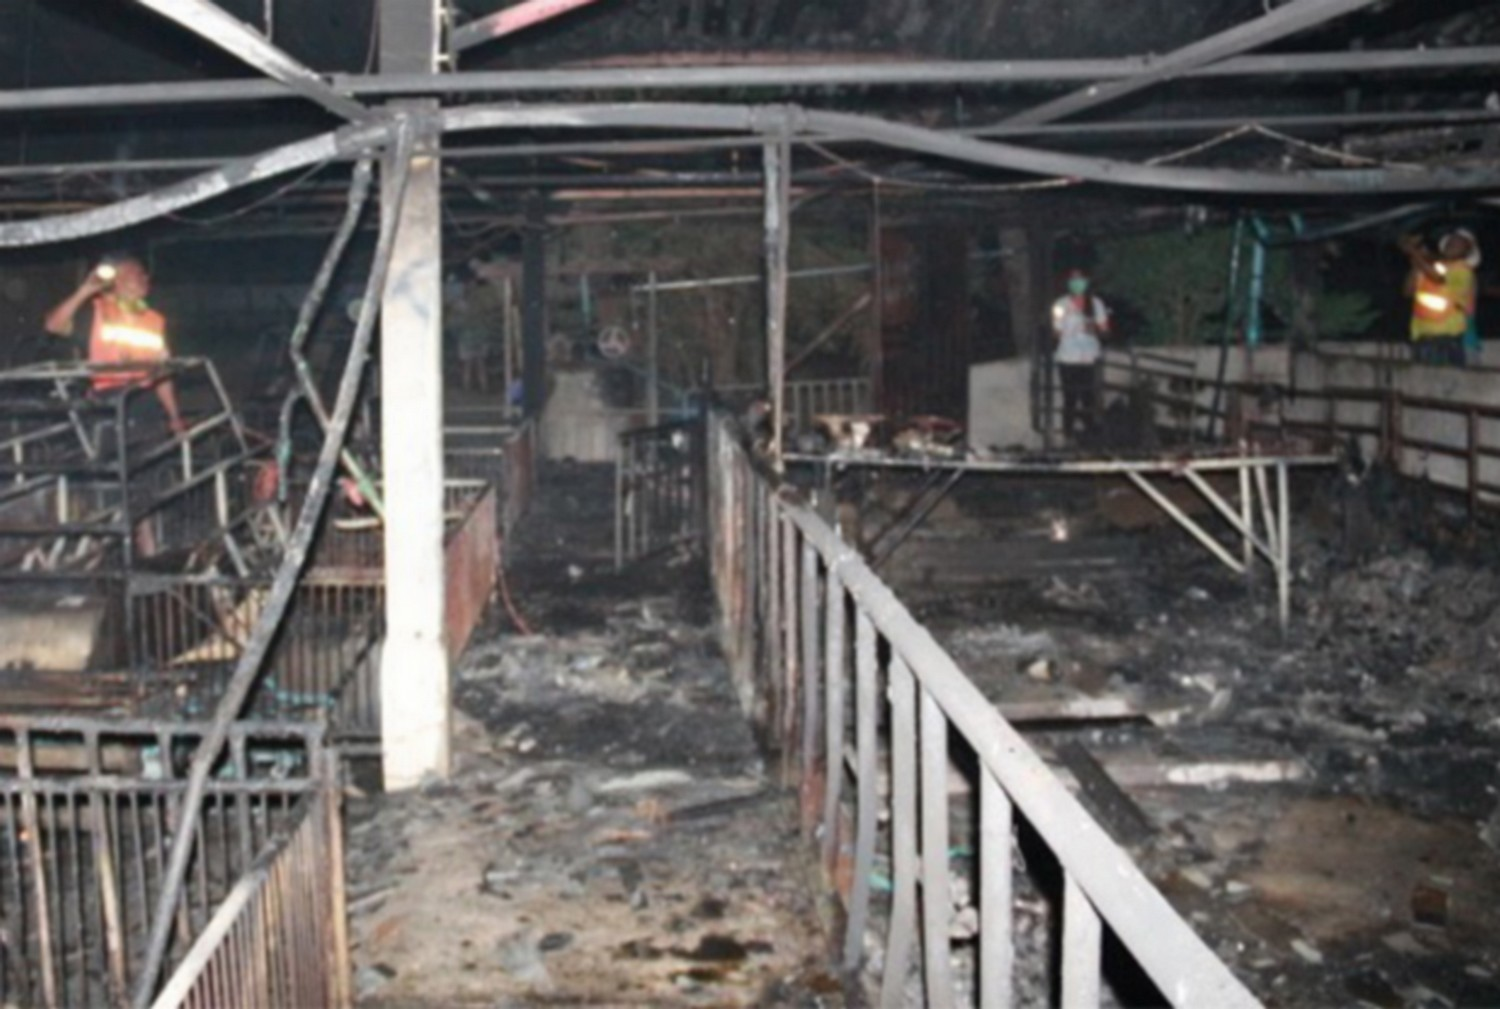 Inside the fire-gutted piggery in Nang Rong district, Buri Ram province, on Sunday night. (Photo: Surichai Piraksa)